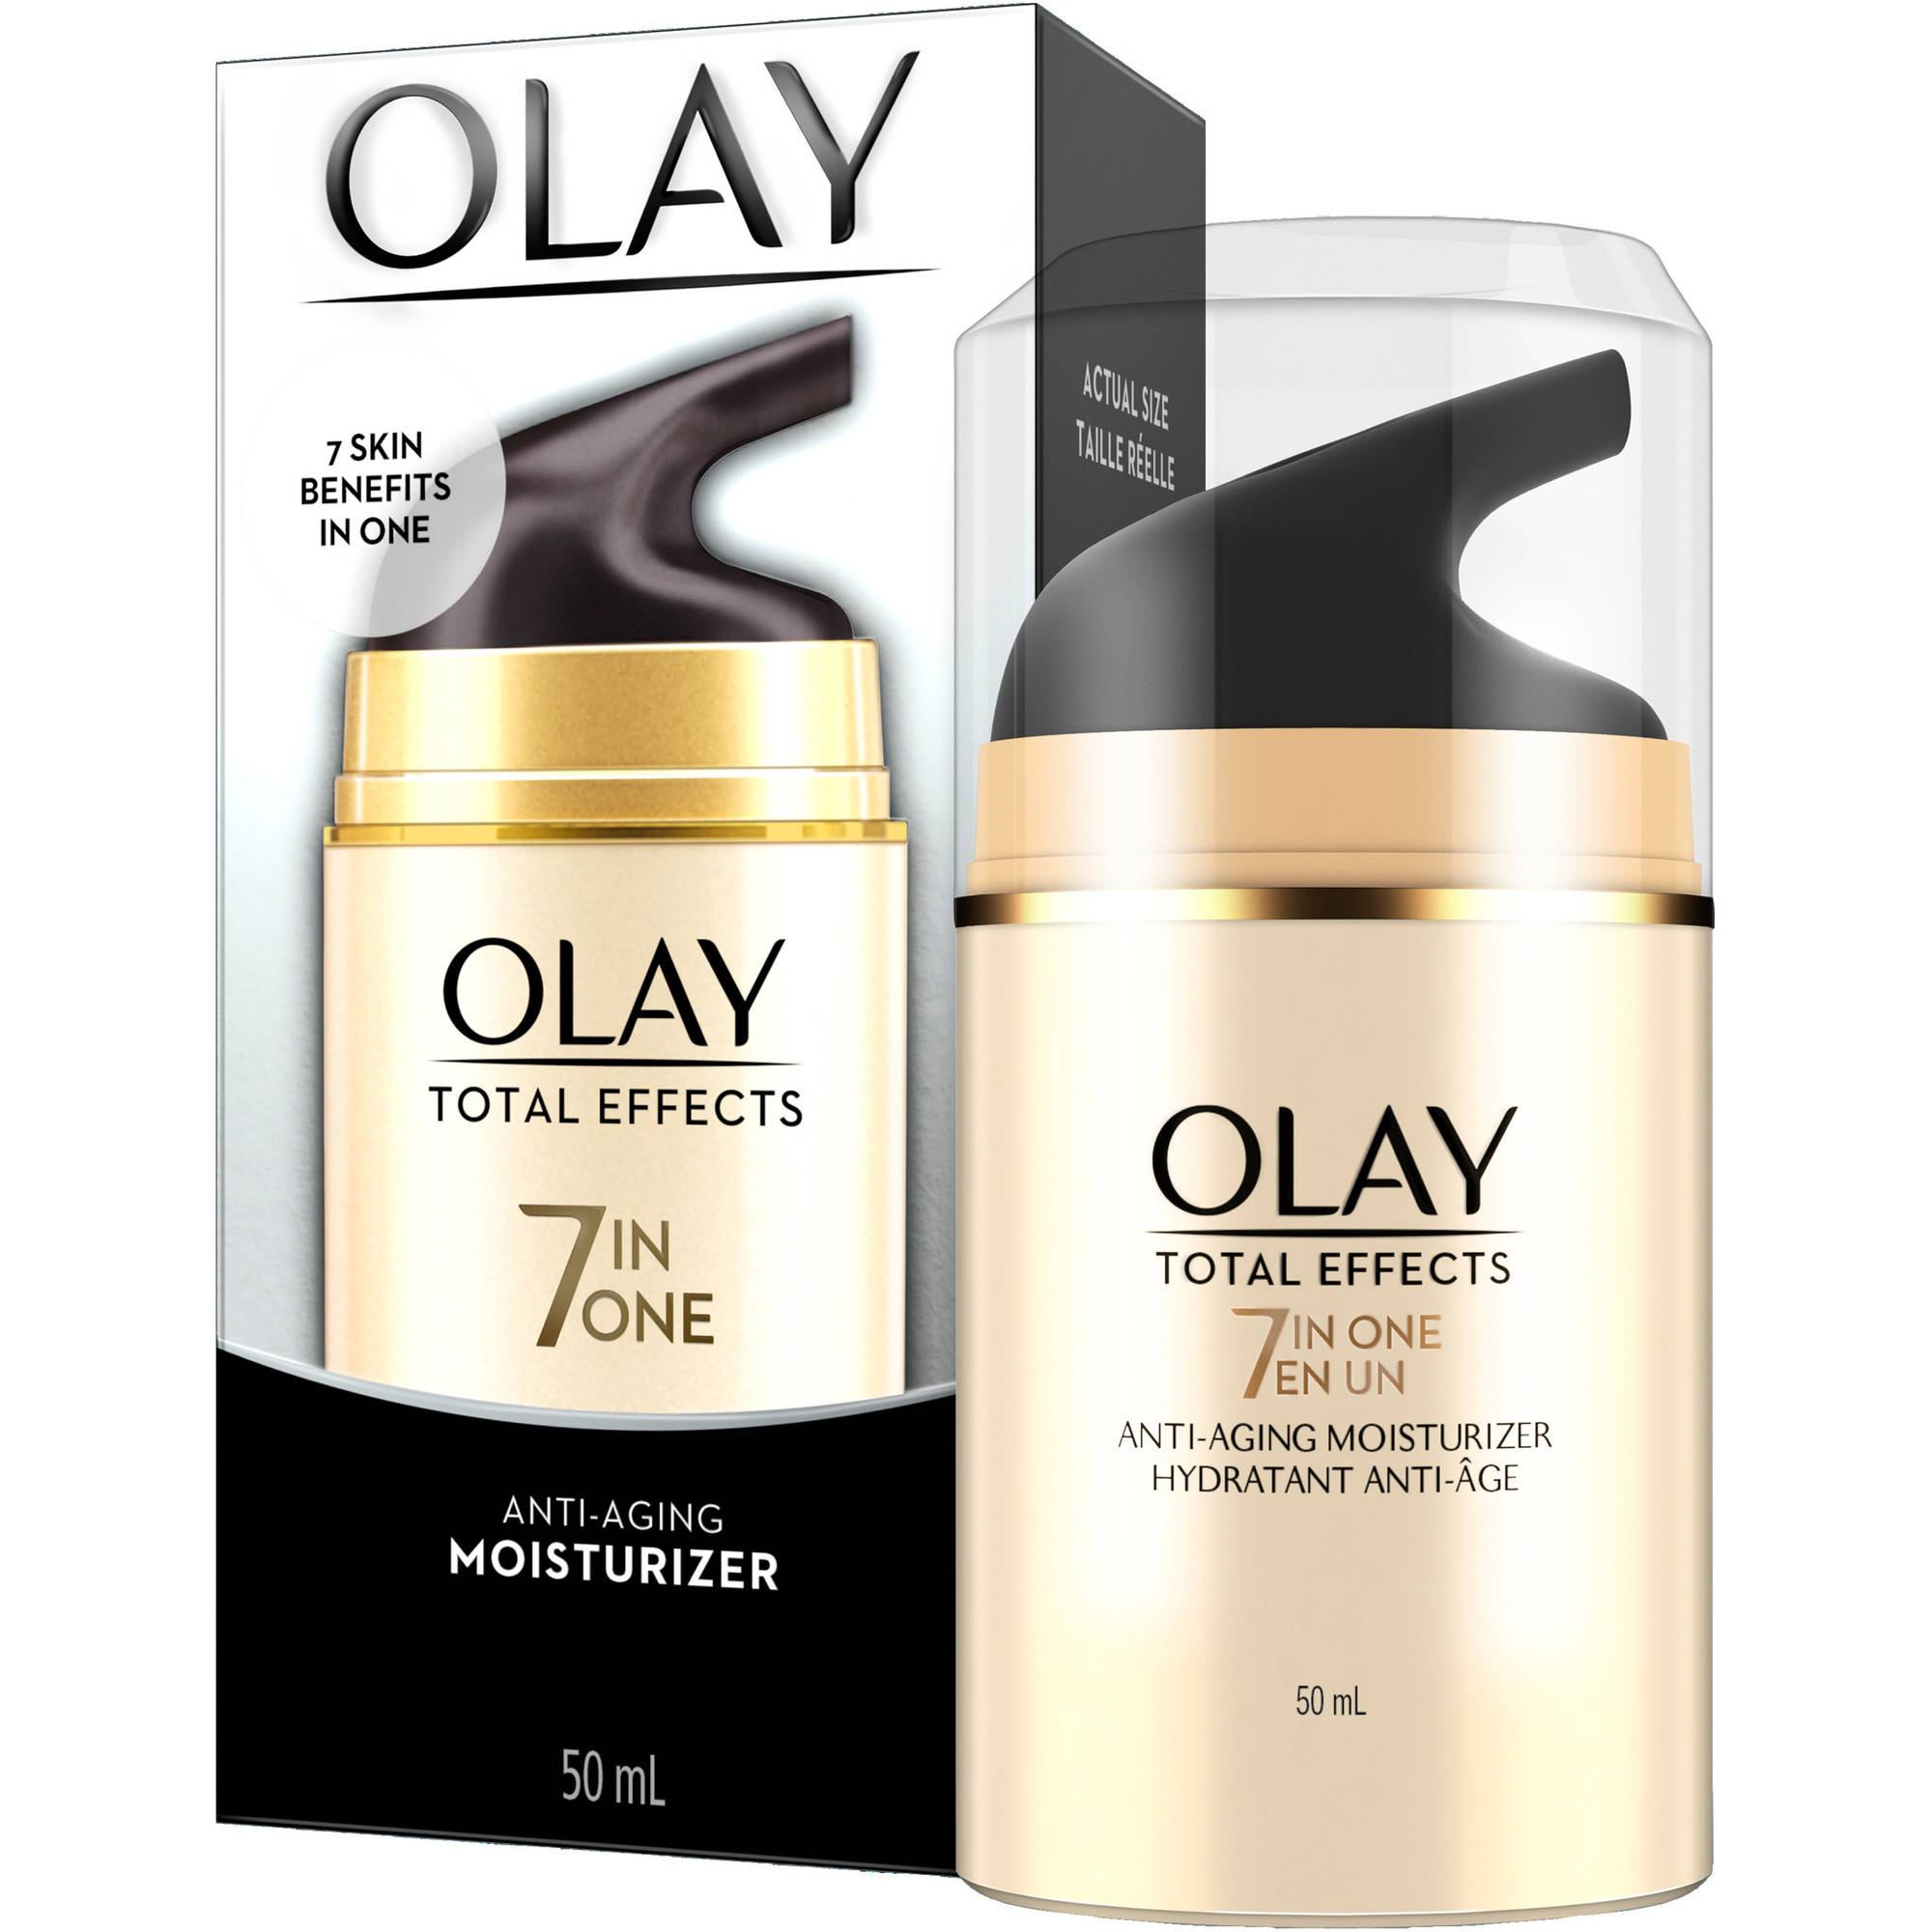 Olay Total Effects 7-in-1 Anti-Aging Moisturizer, 1.7 fl oz